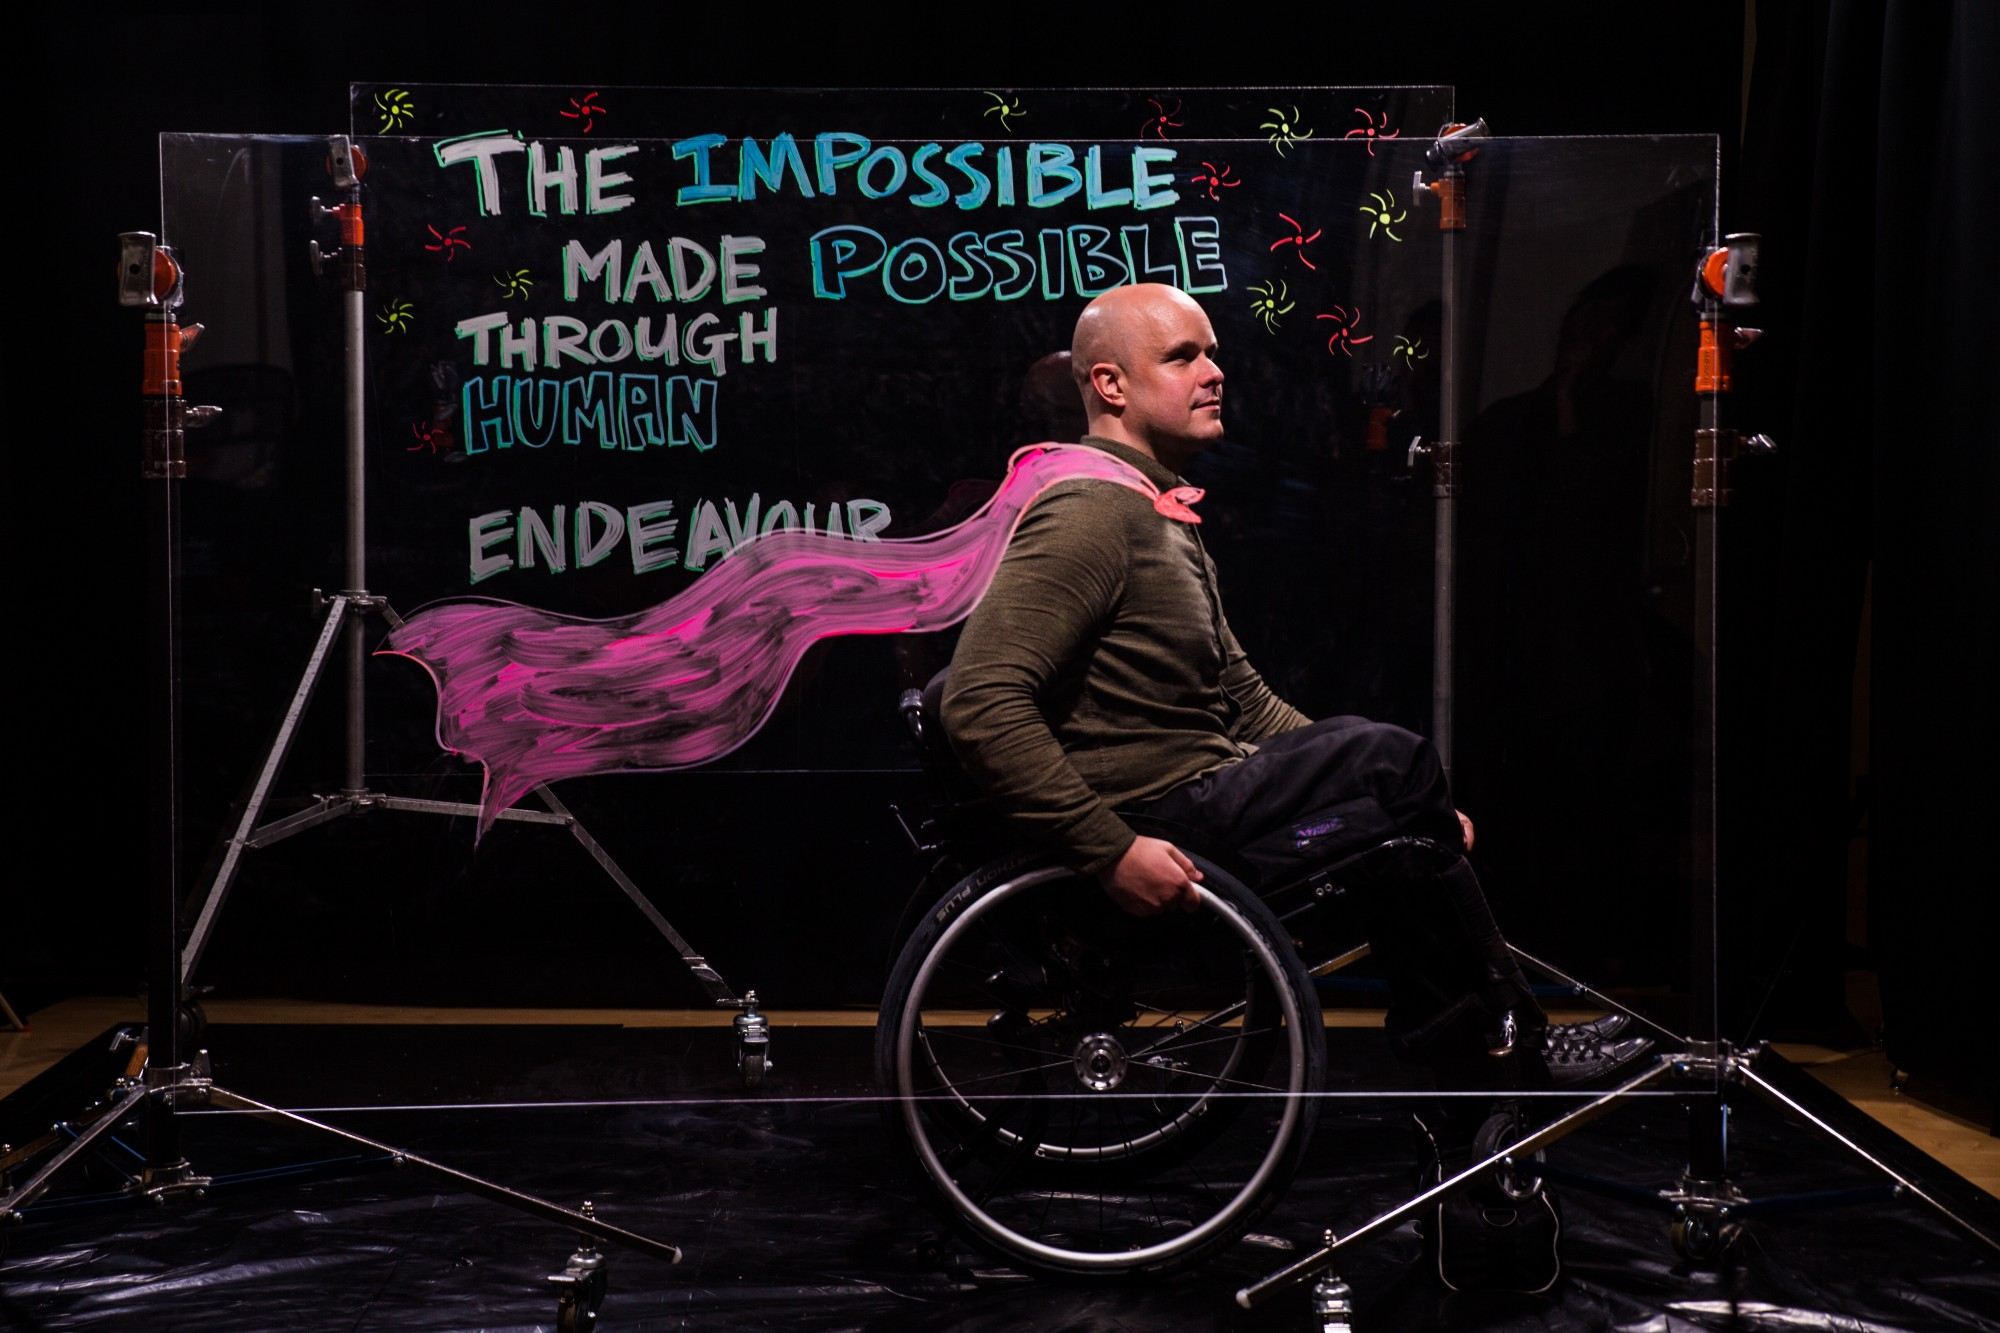 Unbroken by blindness in 1998, Mark Pollock went on to compete in ultra endurance races across deserts, mountains, and the polar ice caps including being the first blind person to race to the South Pole. He was left paralyzed after a 2010 fall from a second story window. He is now exploring the frontiers of spinal cord injury recovery combining an innovative electrical stimulator over his spinal cord and a drug super-charging his nervous system, whilst walking hundreds of thousands of steps as the world's leading test pilot of Ekso Bionics robotic legs.